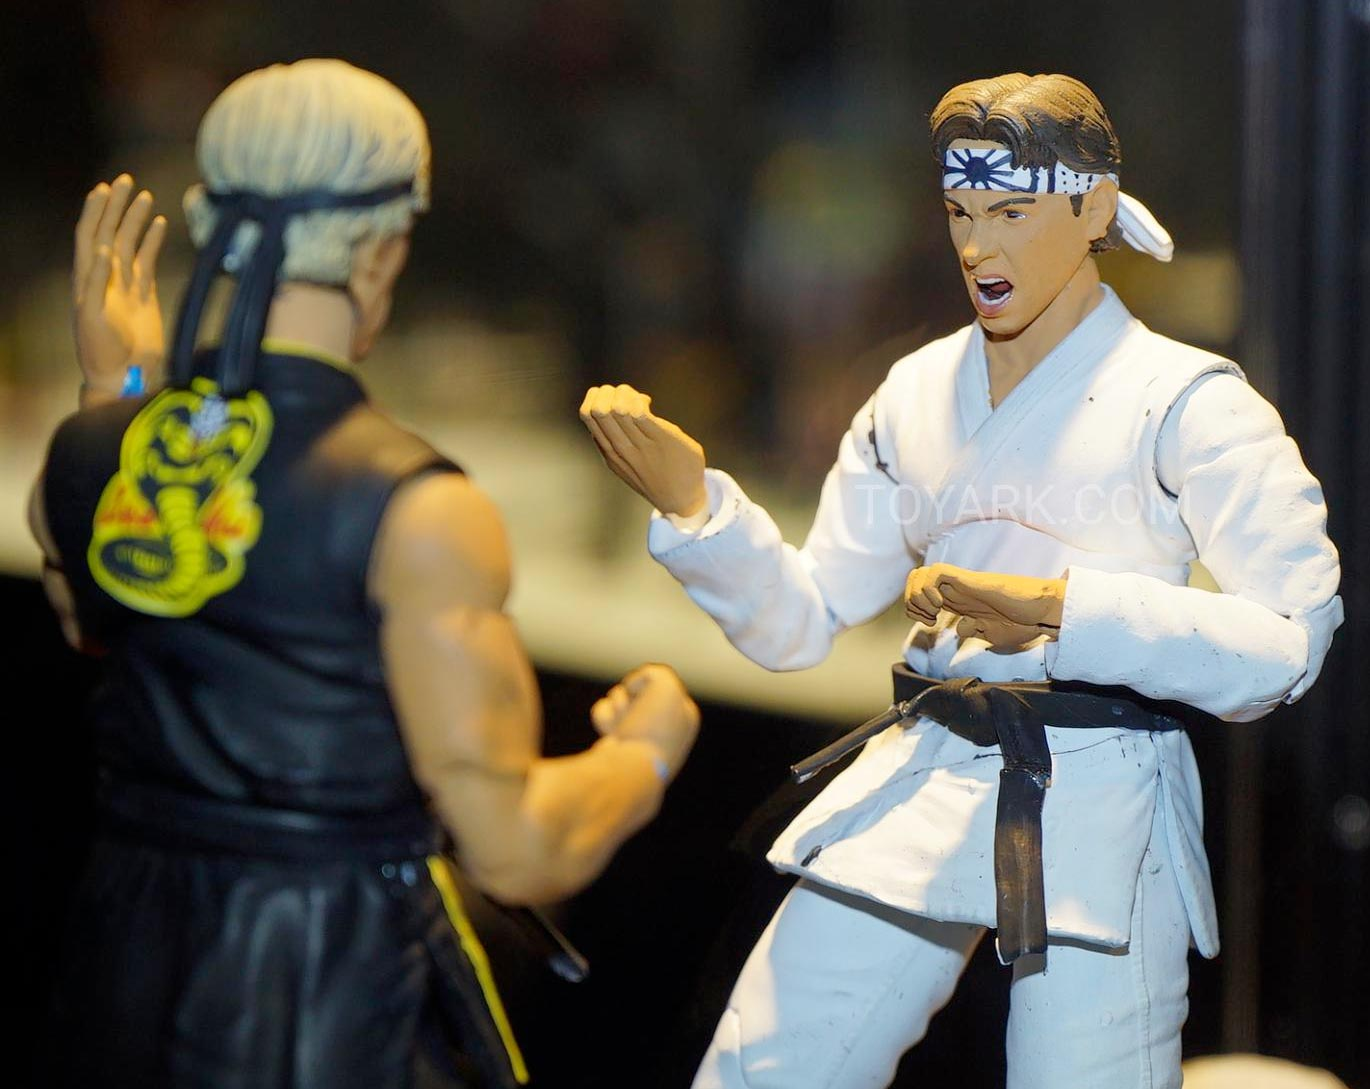 fun-action-figures-revealed-for-the-goonies-the-karate-kid-and-halloween-iii-season-of-the-witch3.jpg